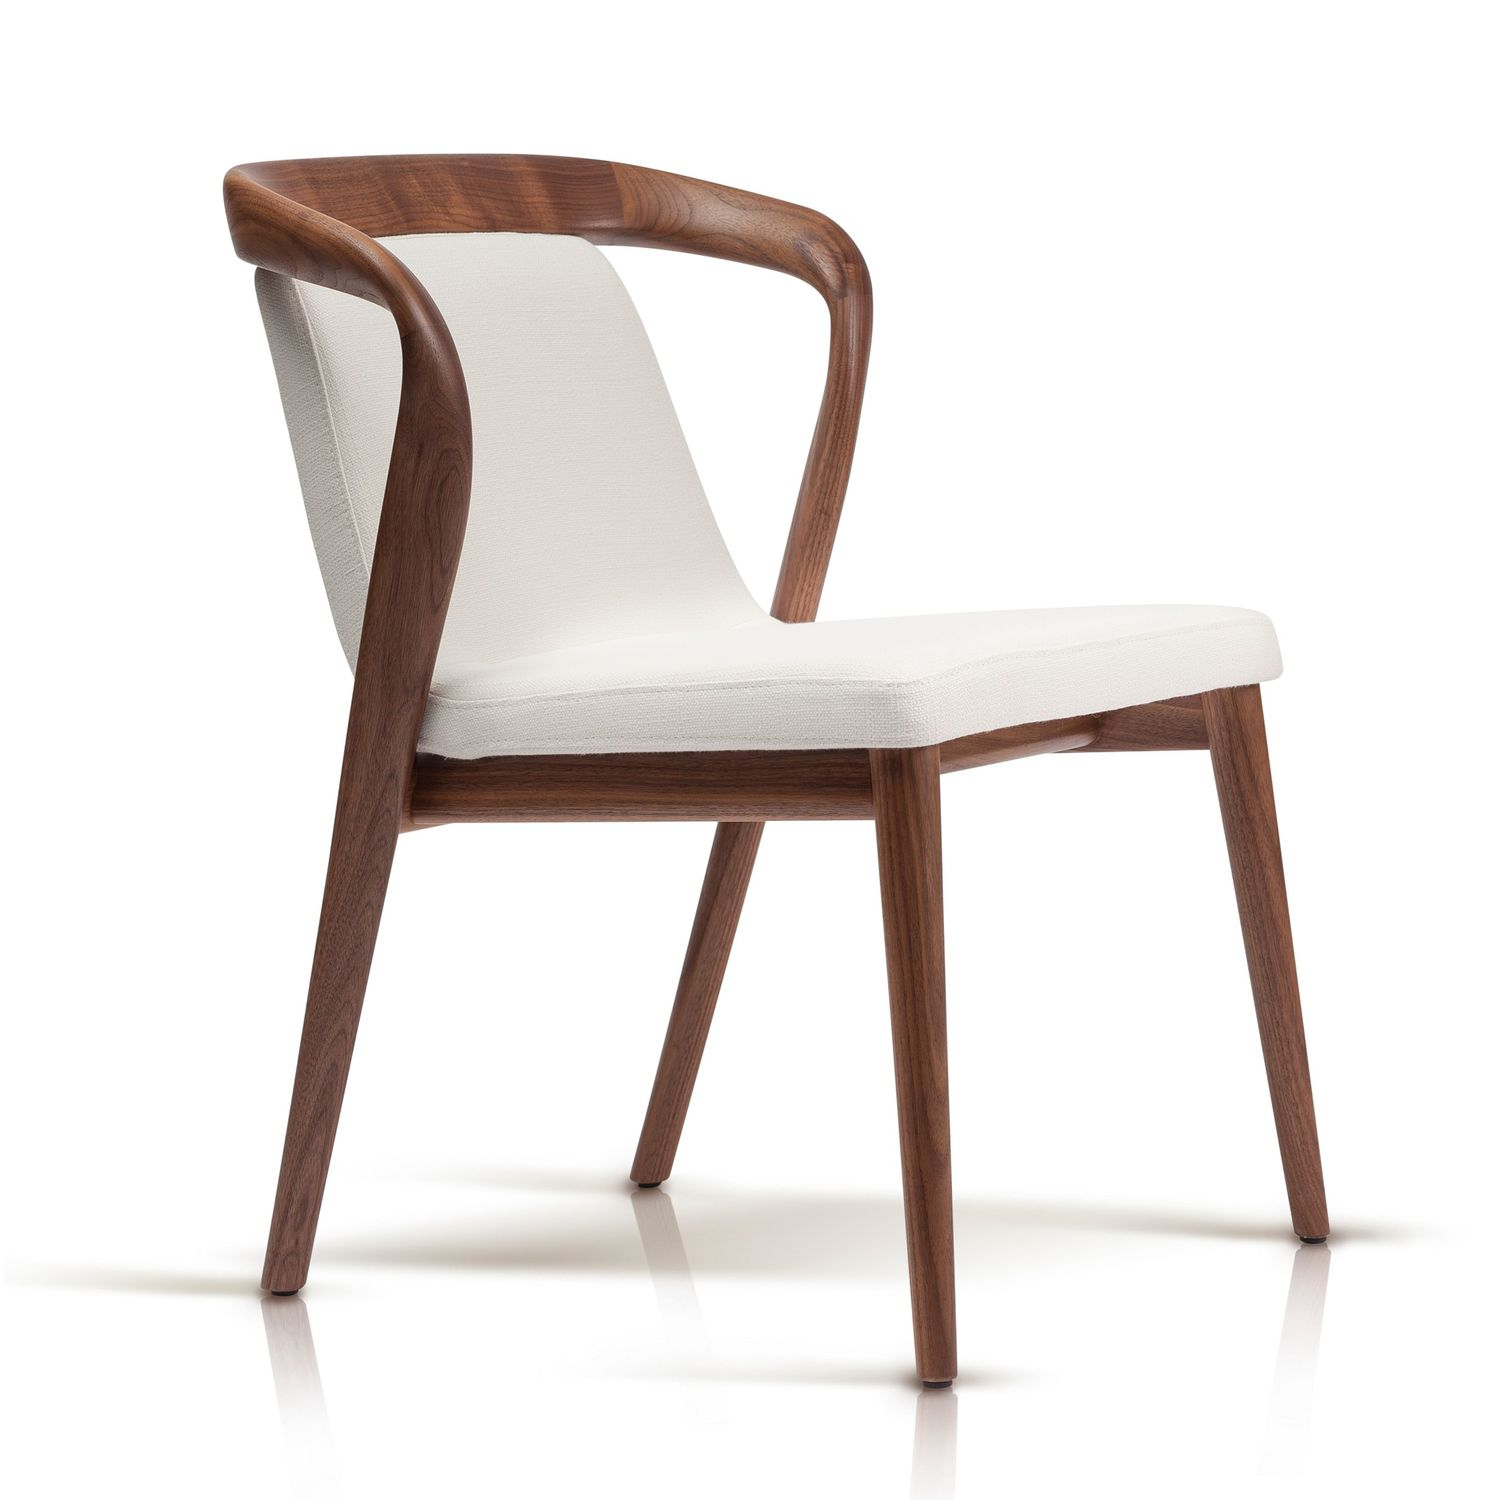 Contemporary Chair / Upholstered / Fabric / Wood   FEAT By Marconato  Maurizio U0026 Terry Zappa